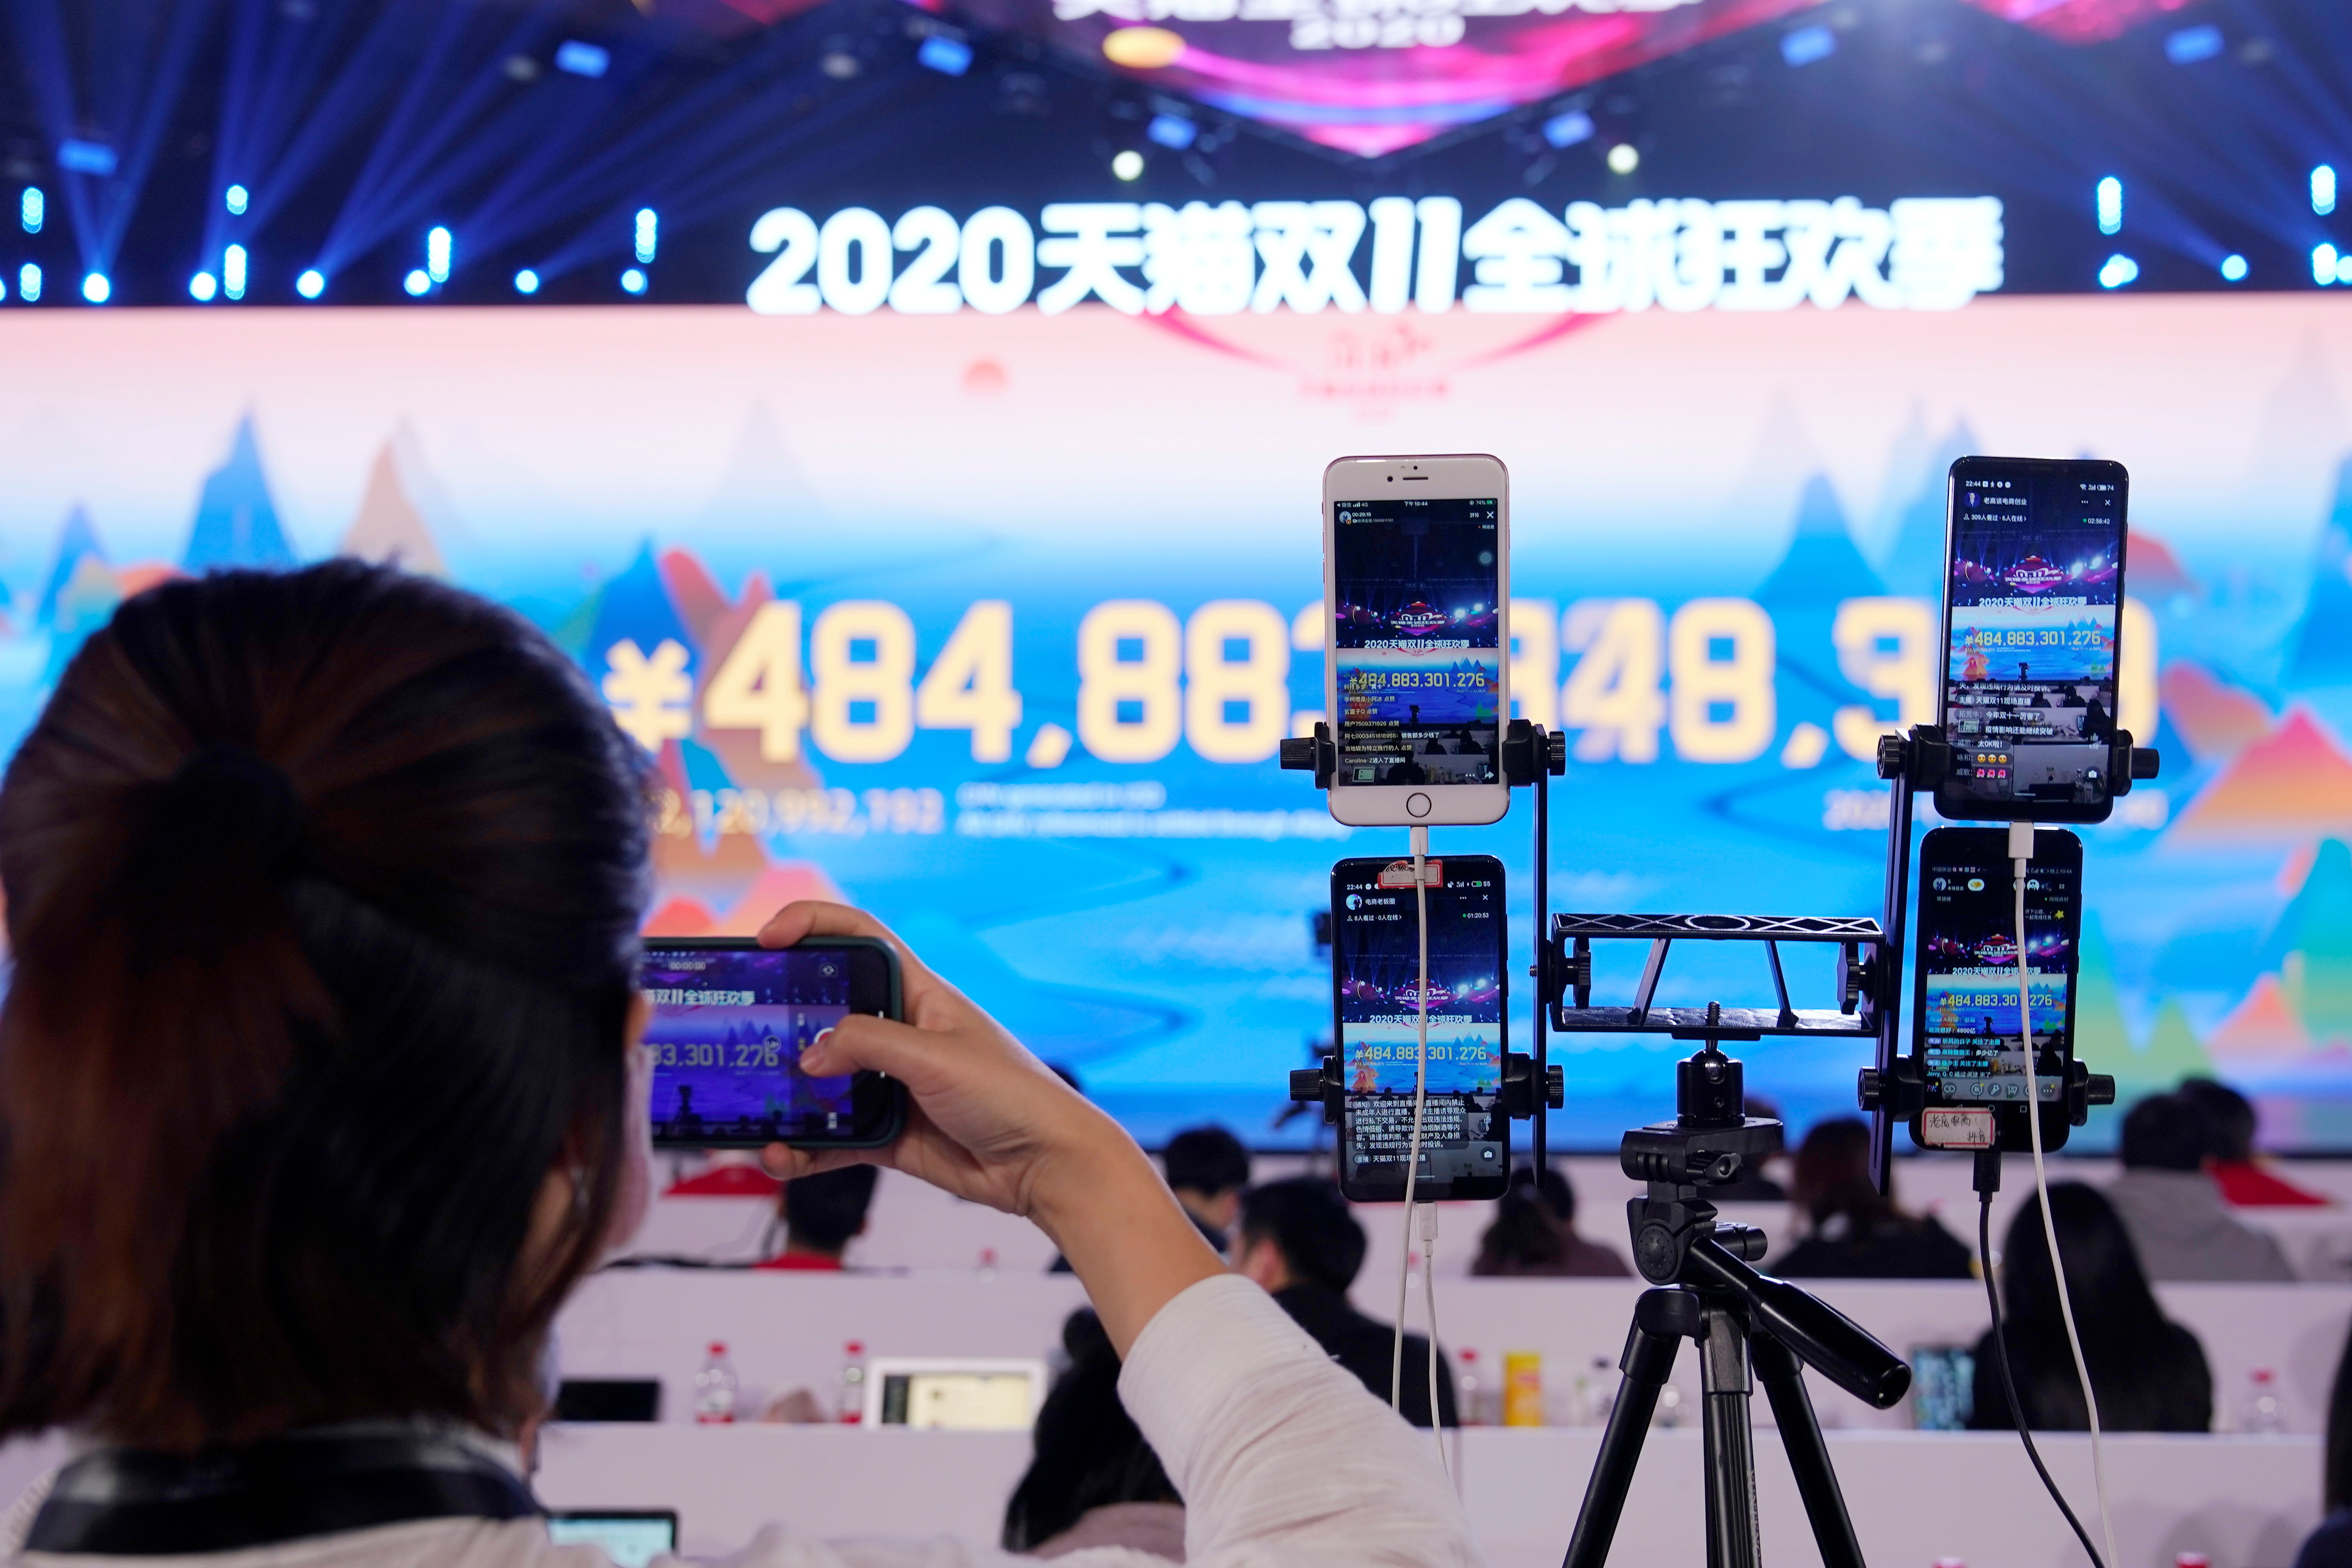 A live-streaming session through phones at Alibaba Group's Singles' Day global shopping festival at a media center in Hangzhou, Zhejiang province, China November 11, 2020.